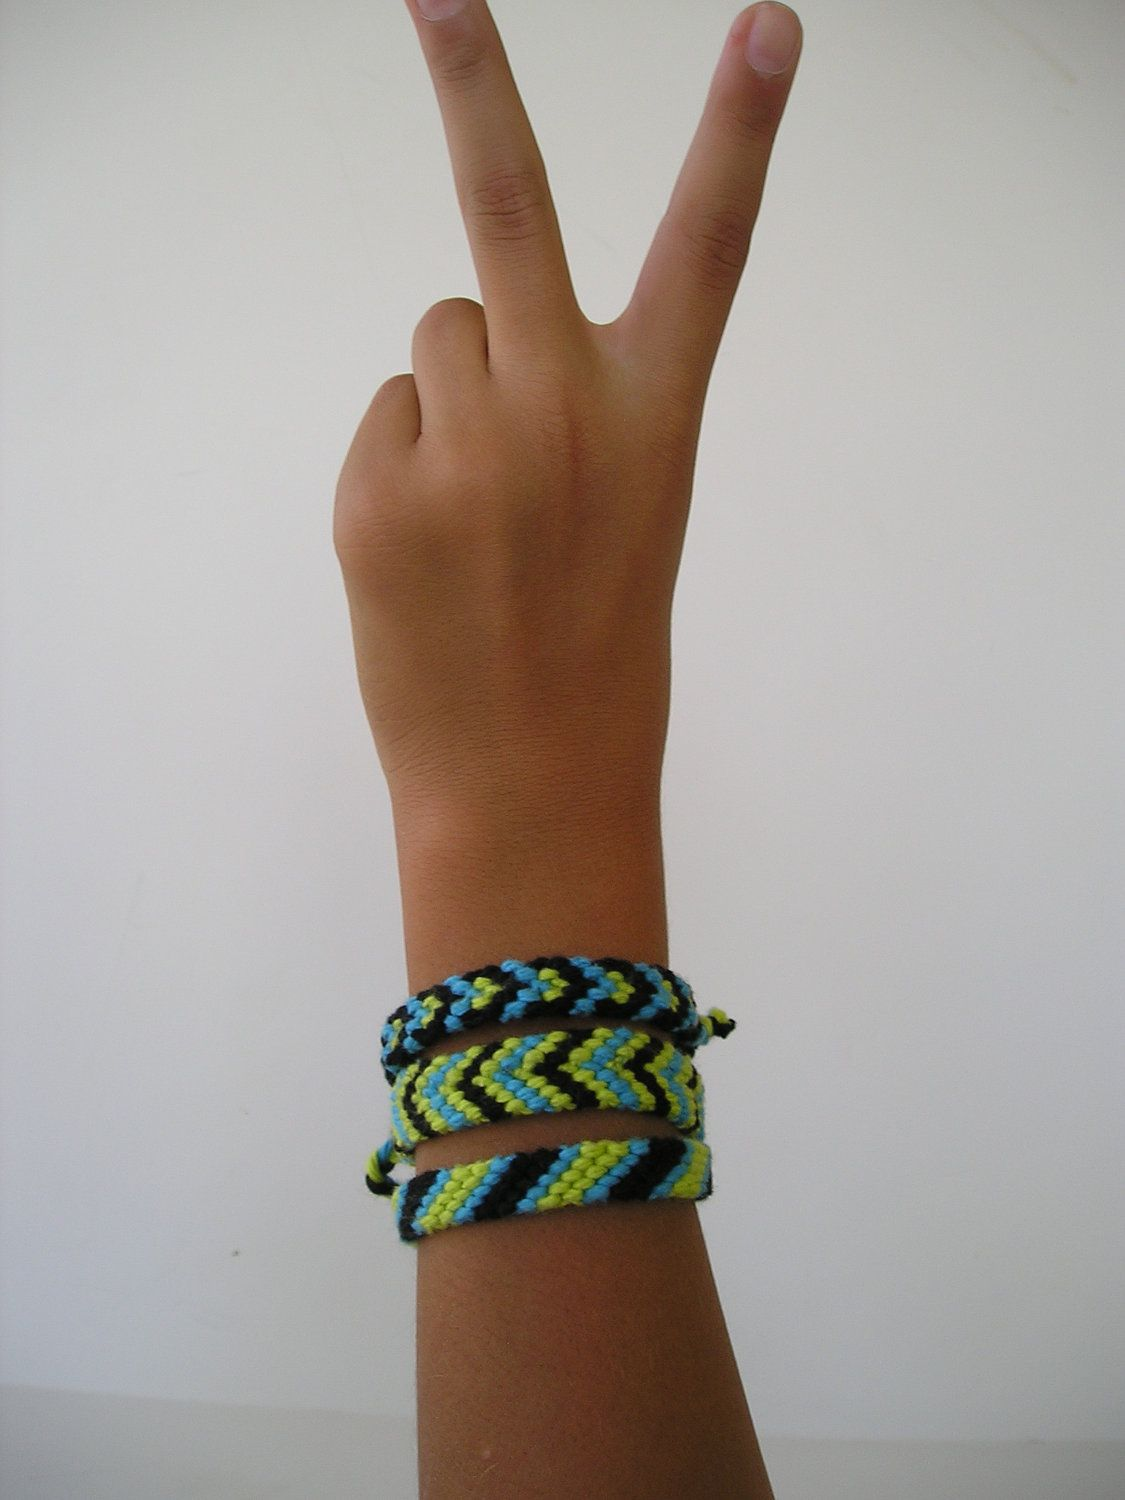 Friendship Braclets Pack of 3 in Green Blue and Black. $6.00, via Etsy.